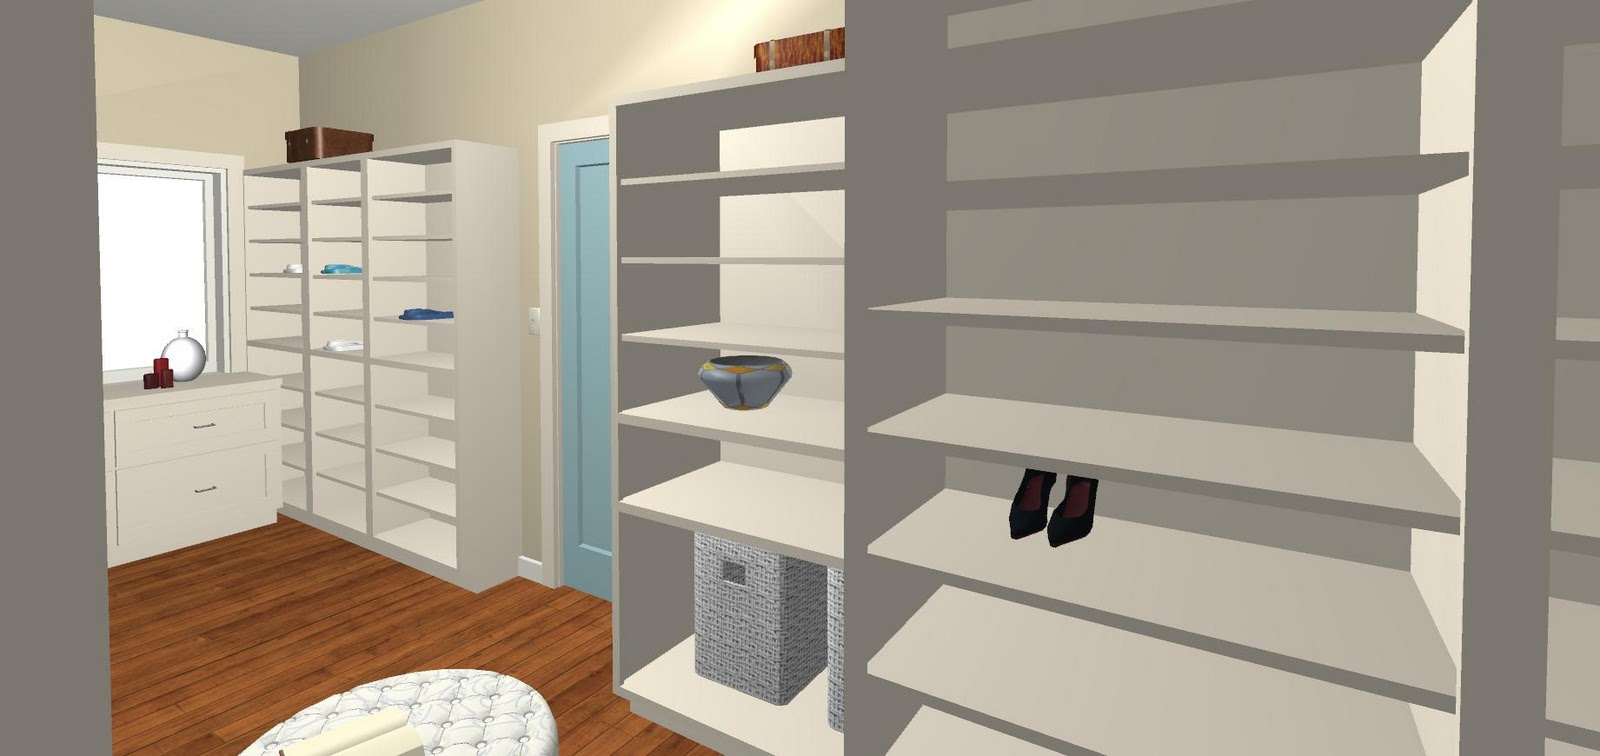 Charmant Wellu2026 Not Really My Closet. But I Designed It! Iu0027m An Interior Design  Student, Whou0027s Landed My First Job U2013 An Opportunity To Create A Plan For A  Walk In ...